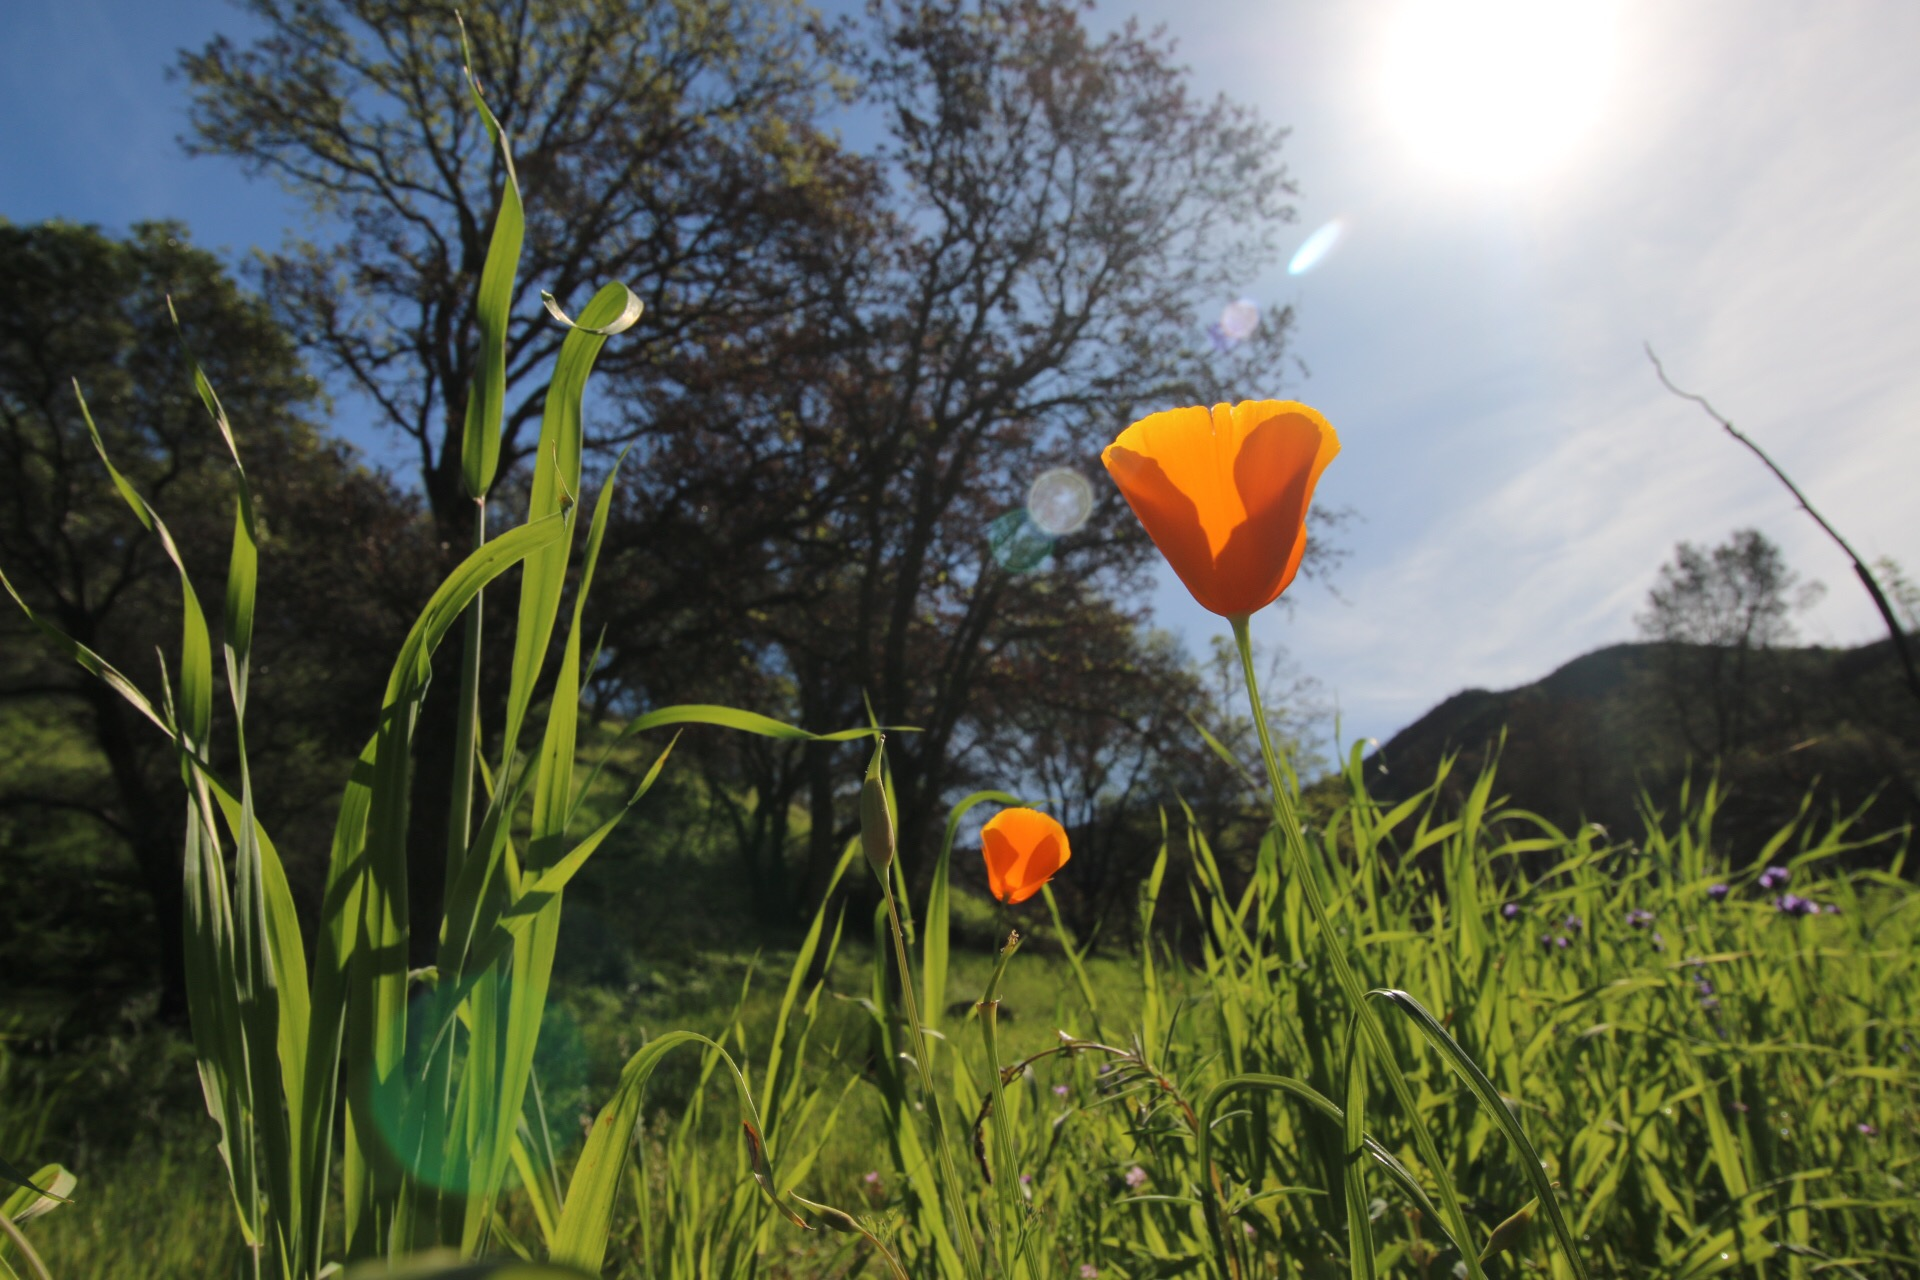 California Poppy in a grass field with trees in the background